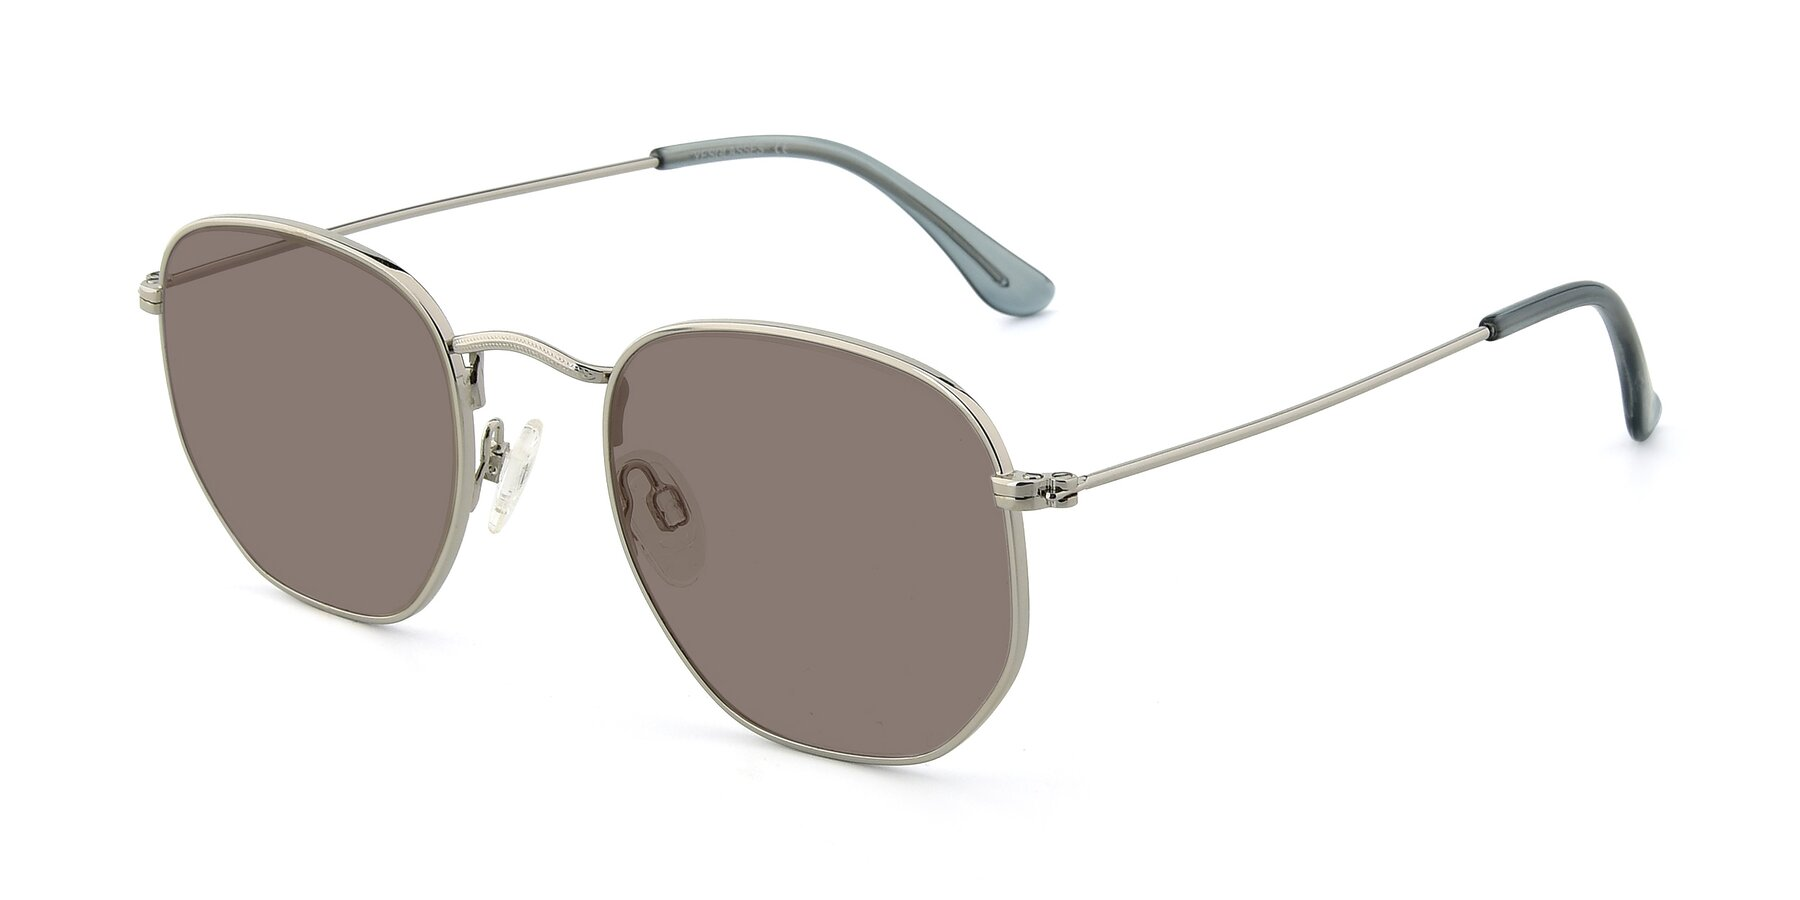 Angle of SSR1944 in Silver with Medium Brown Tinted Lenses